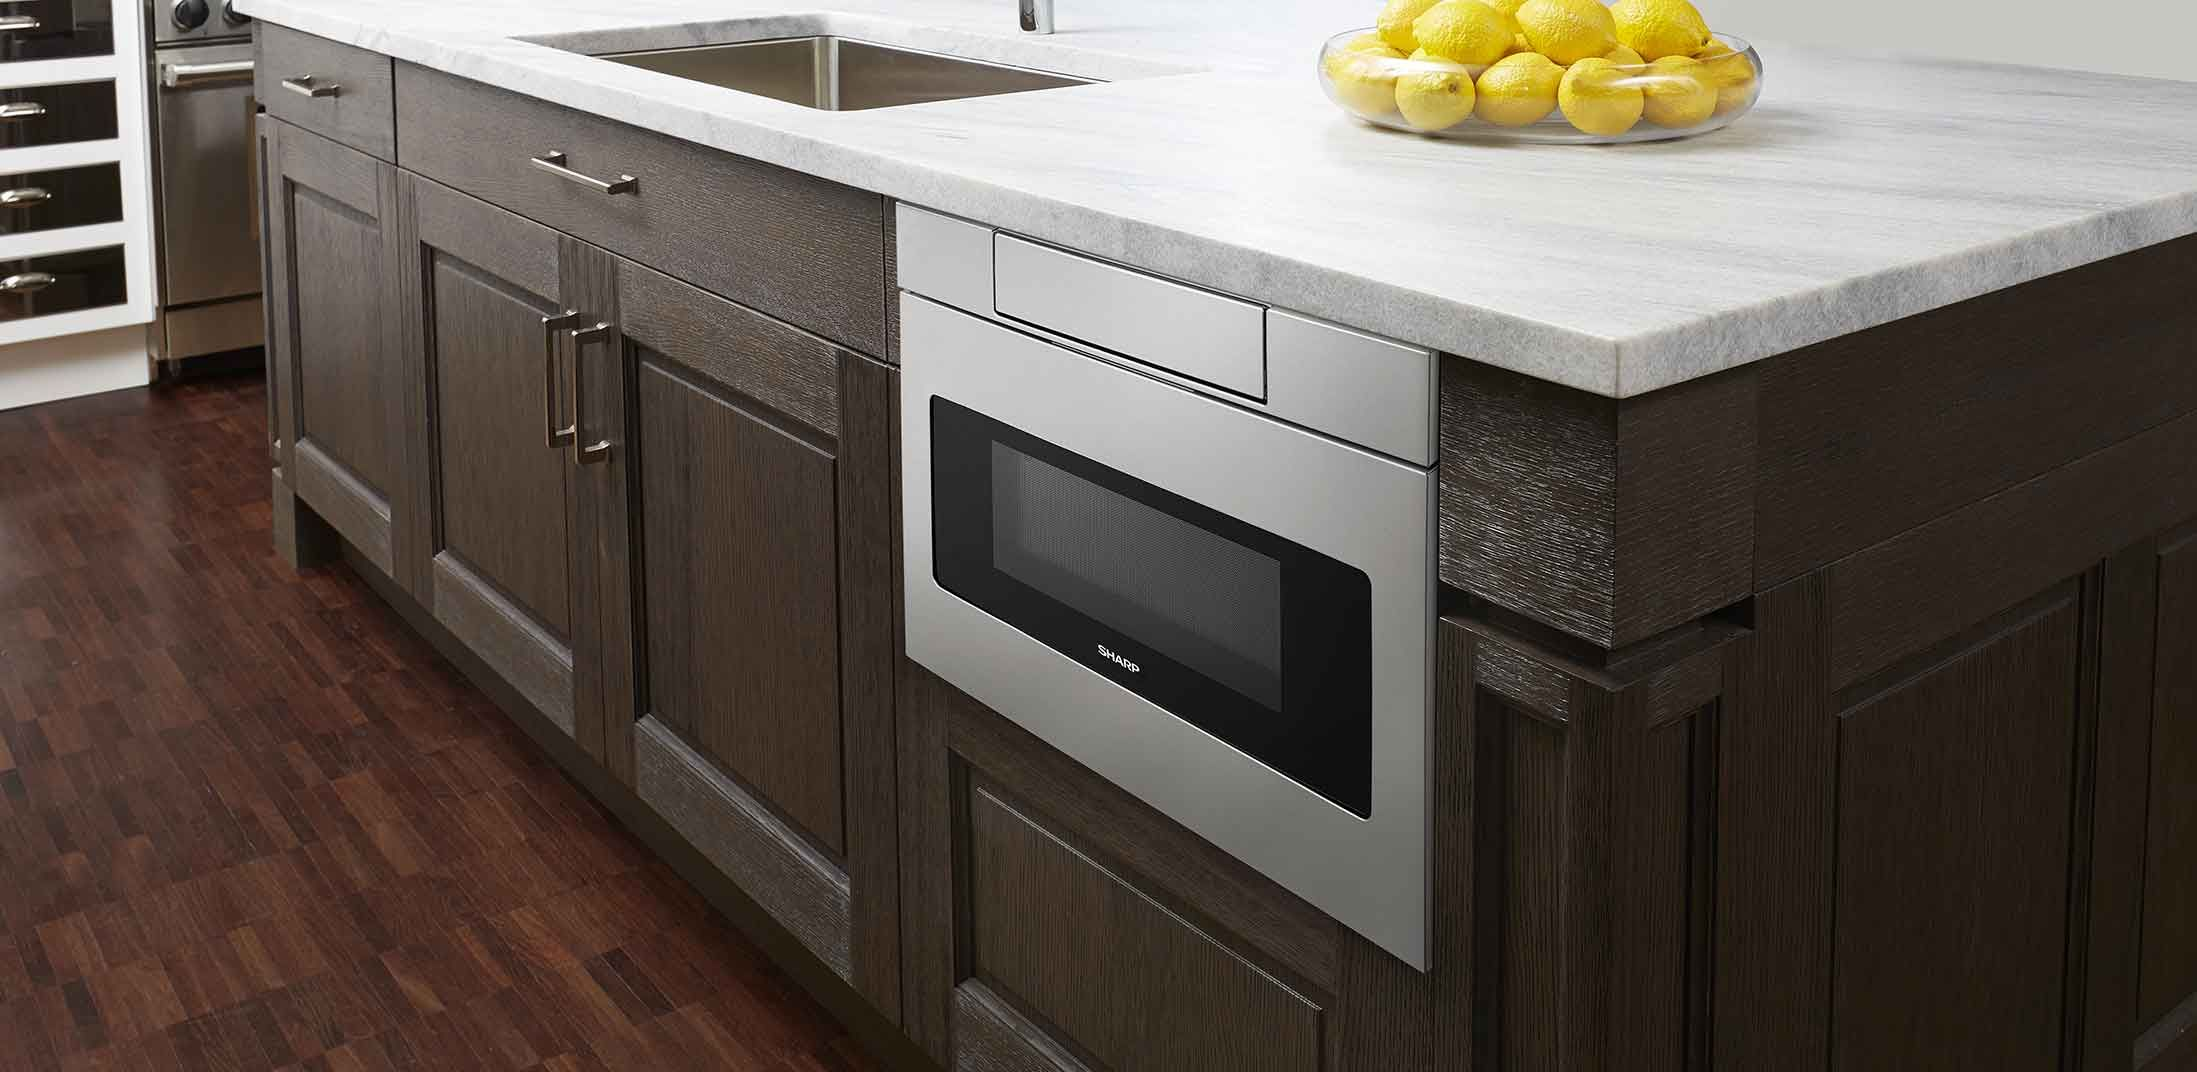 Sharp 24 Inch Microwave Oven Drawers The Easy Open